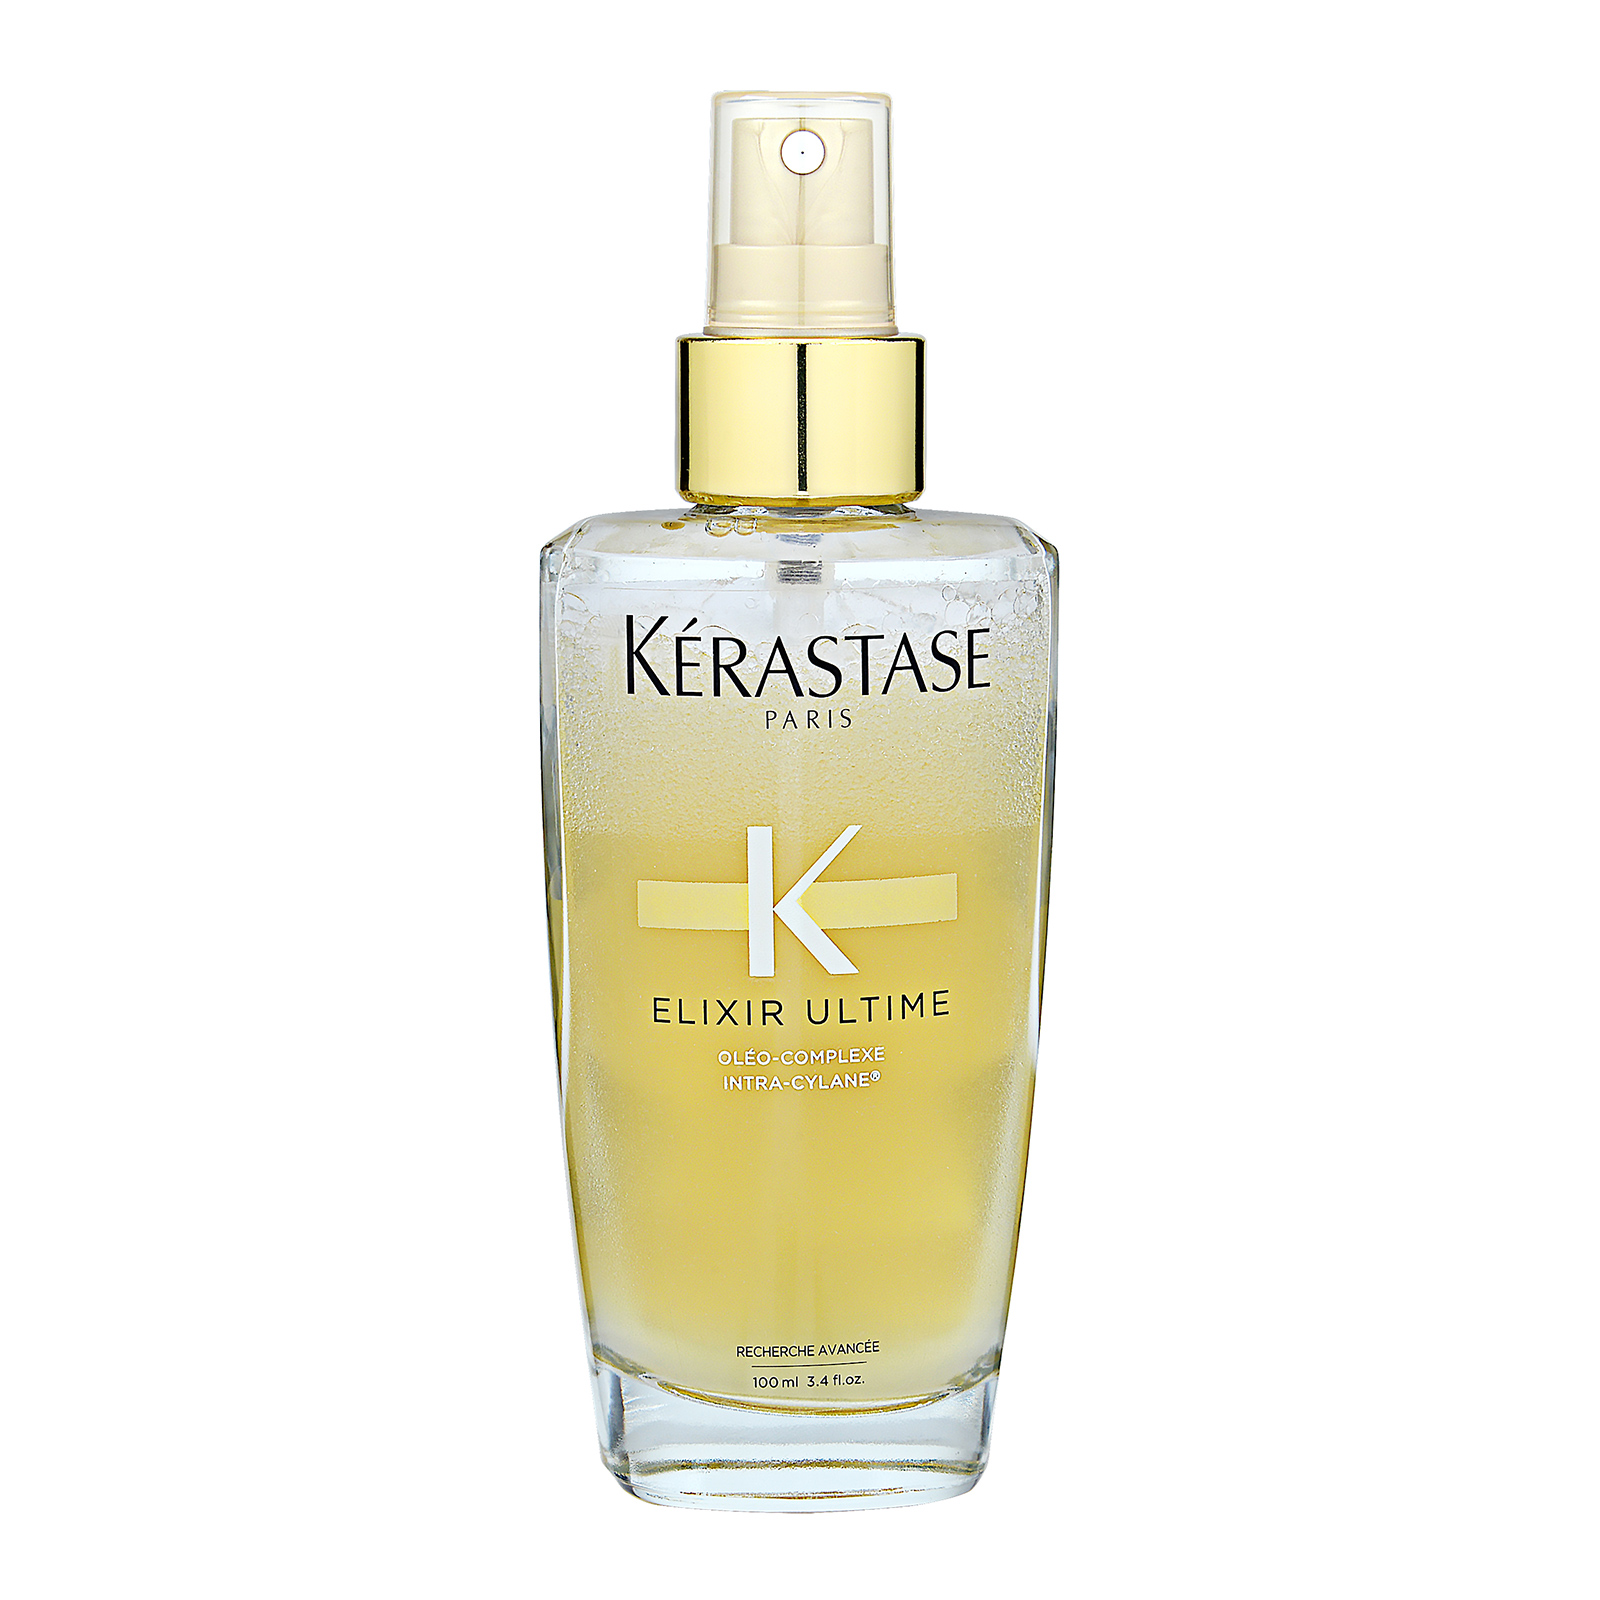 Kérastase Paris Elixir Ultime  Oleo-Complexe Intra-Cylane Volume Beautifying Oil Mist (Fine to Normal Hair) 3.4oz, 100ml